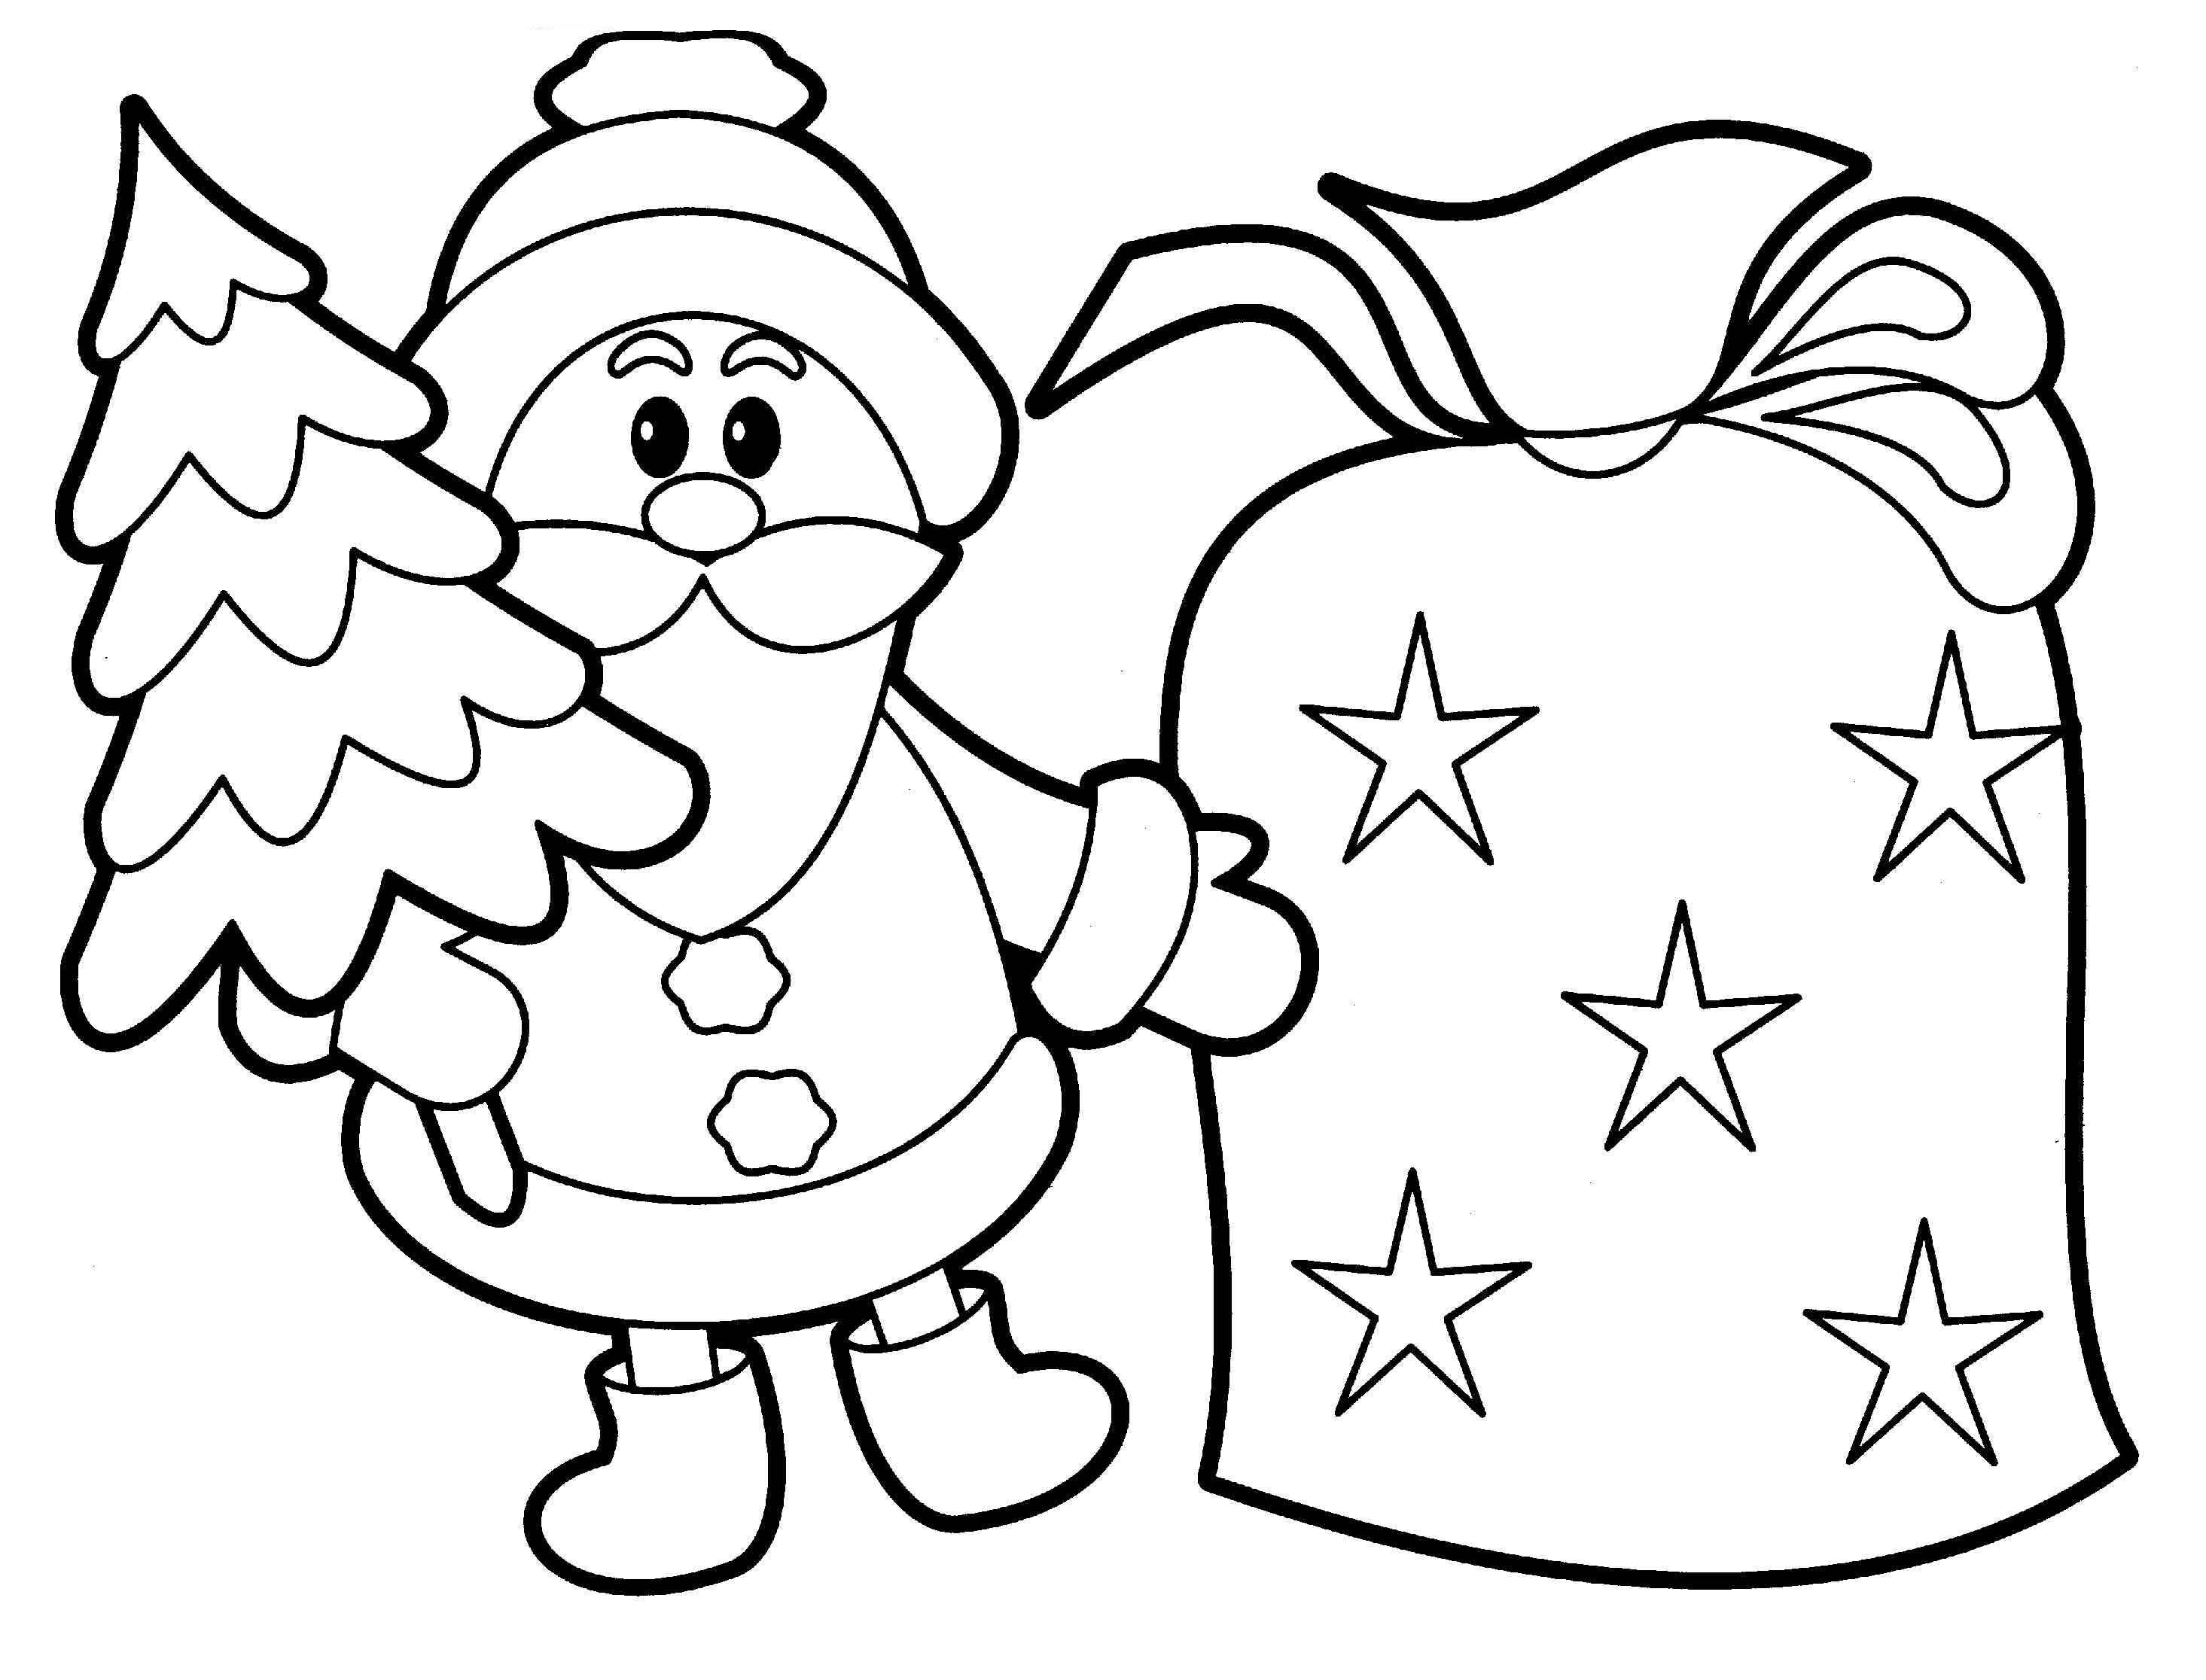 coloring worksheet simple bird coloring page super simple simple coloring worksheet